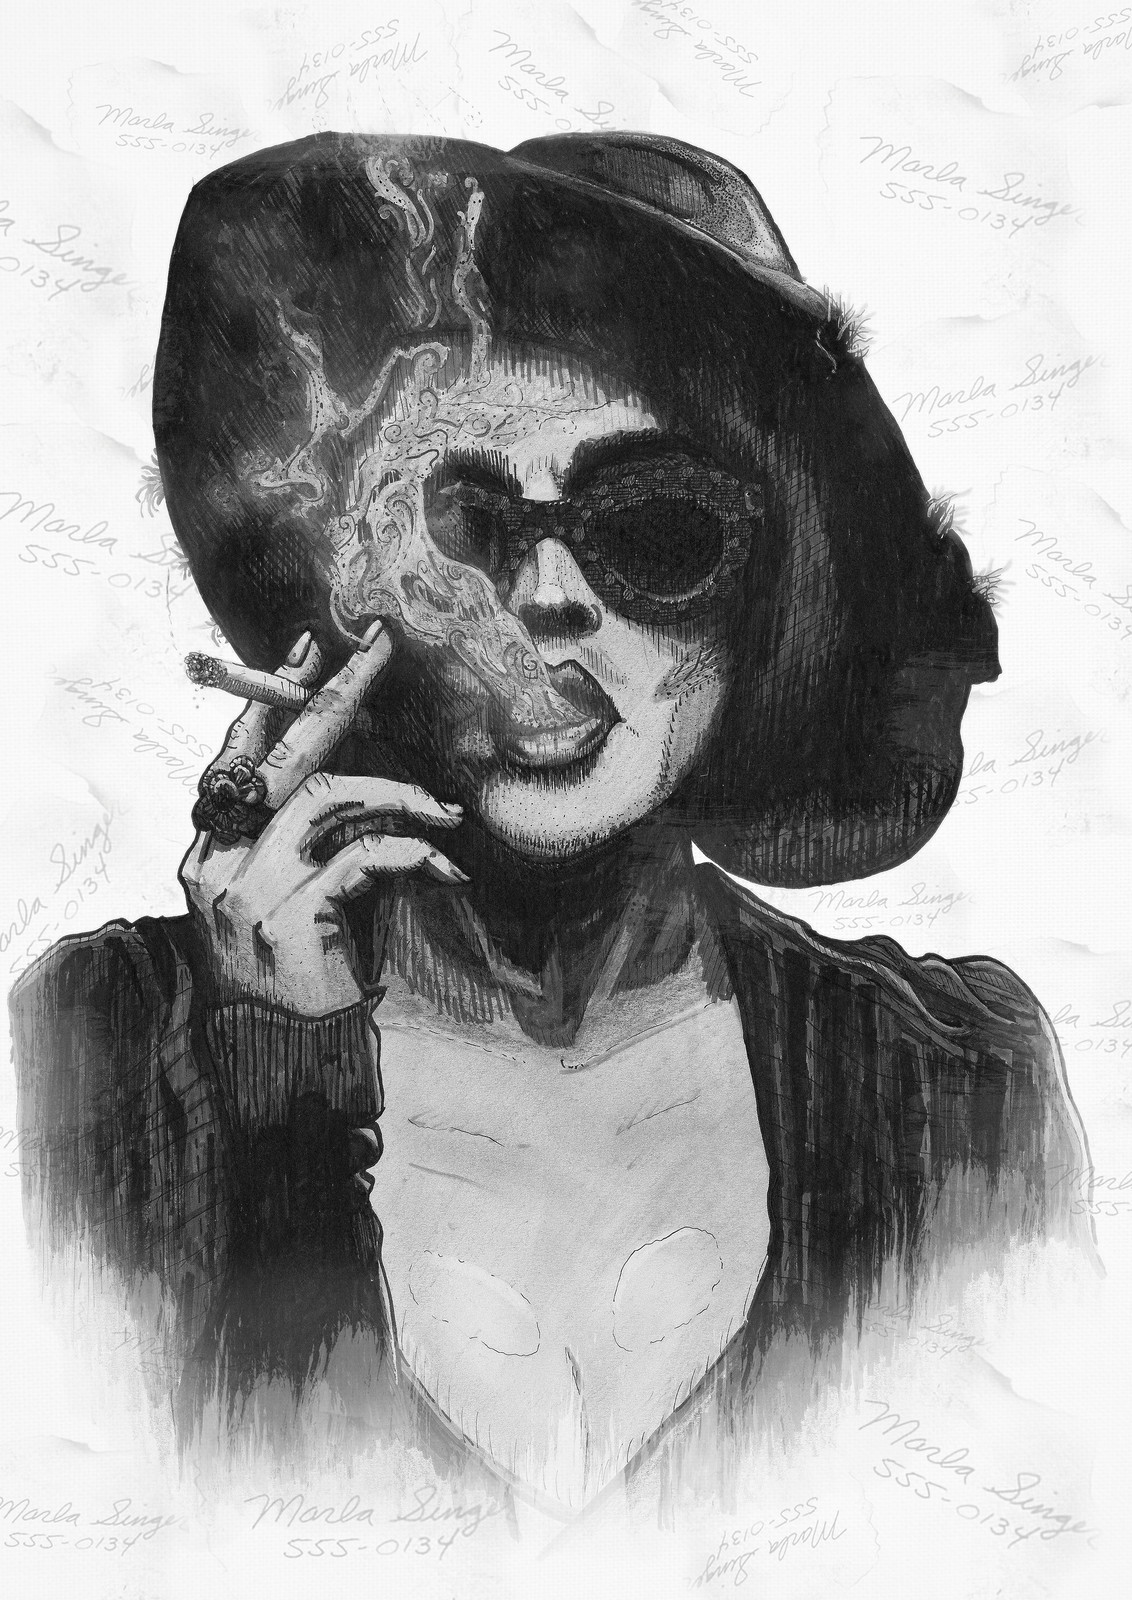 Marla Singer Illustration